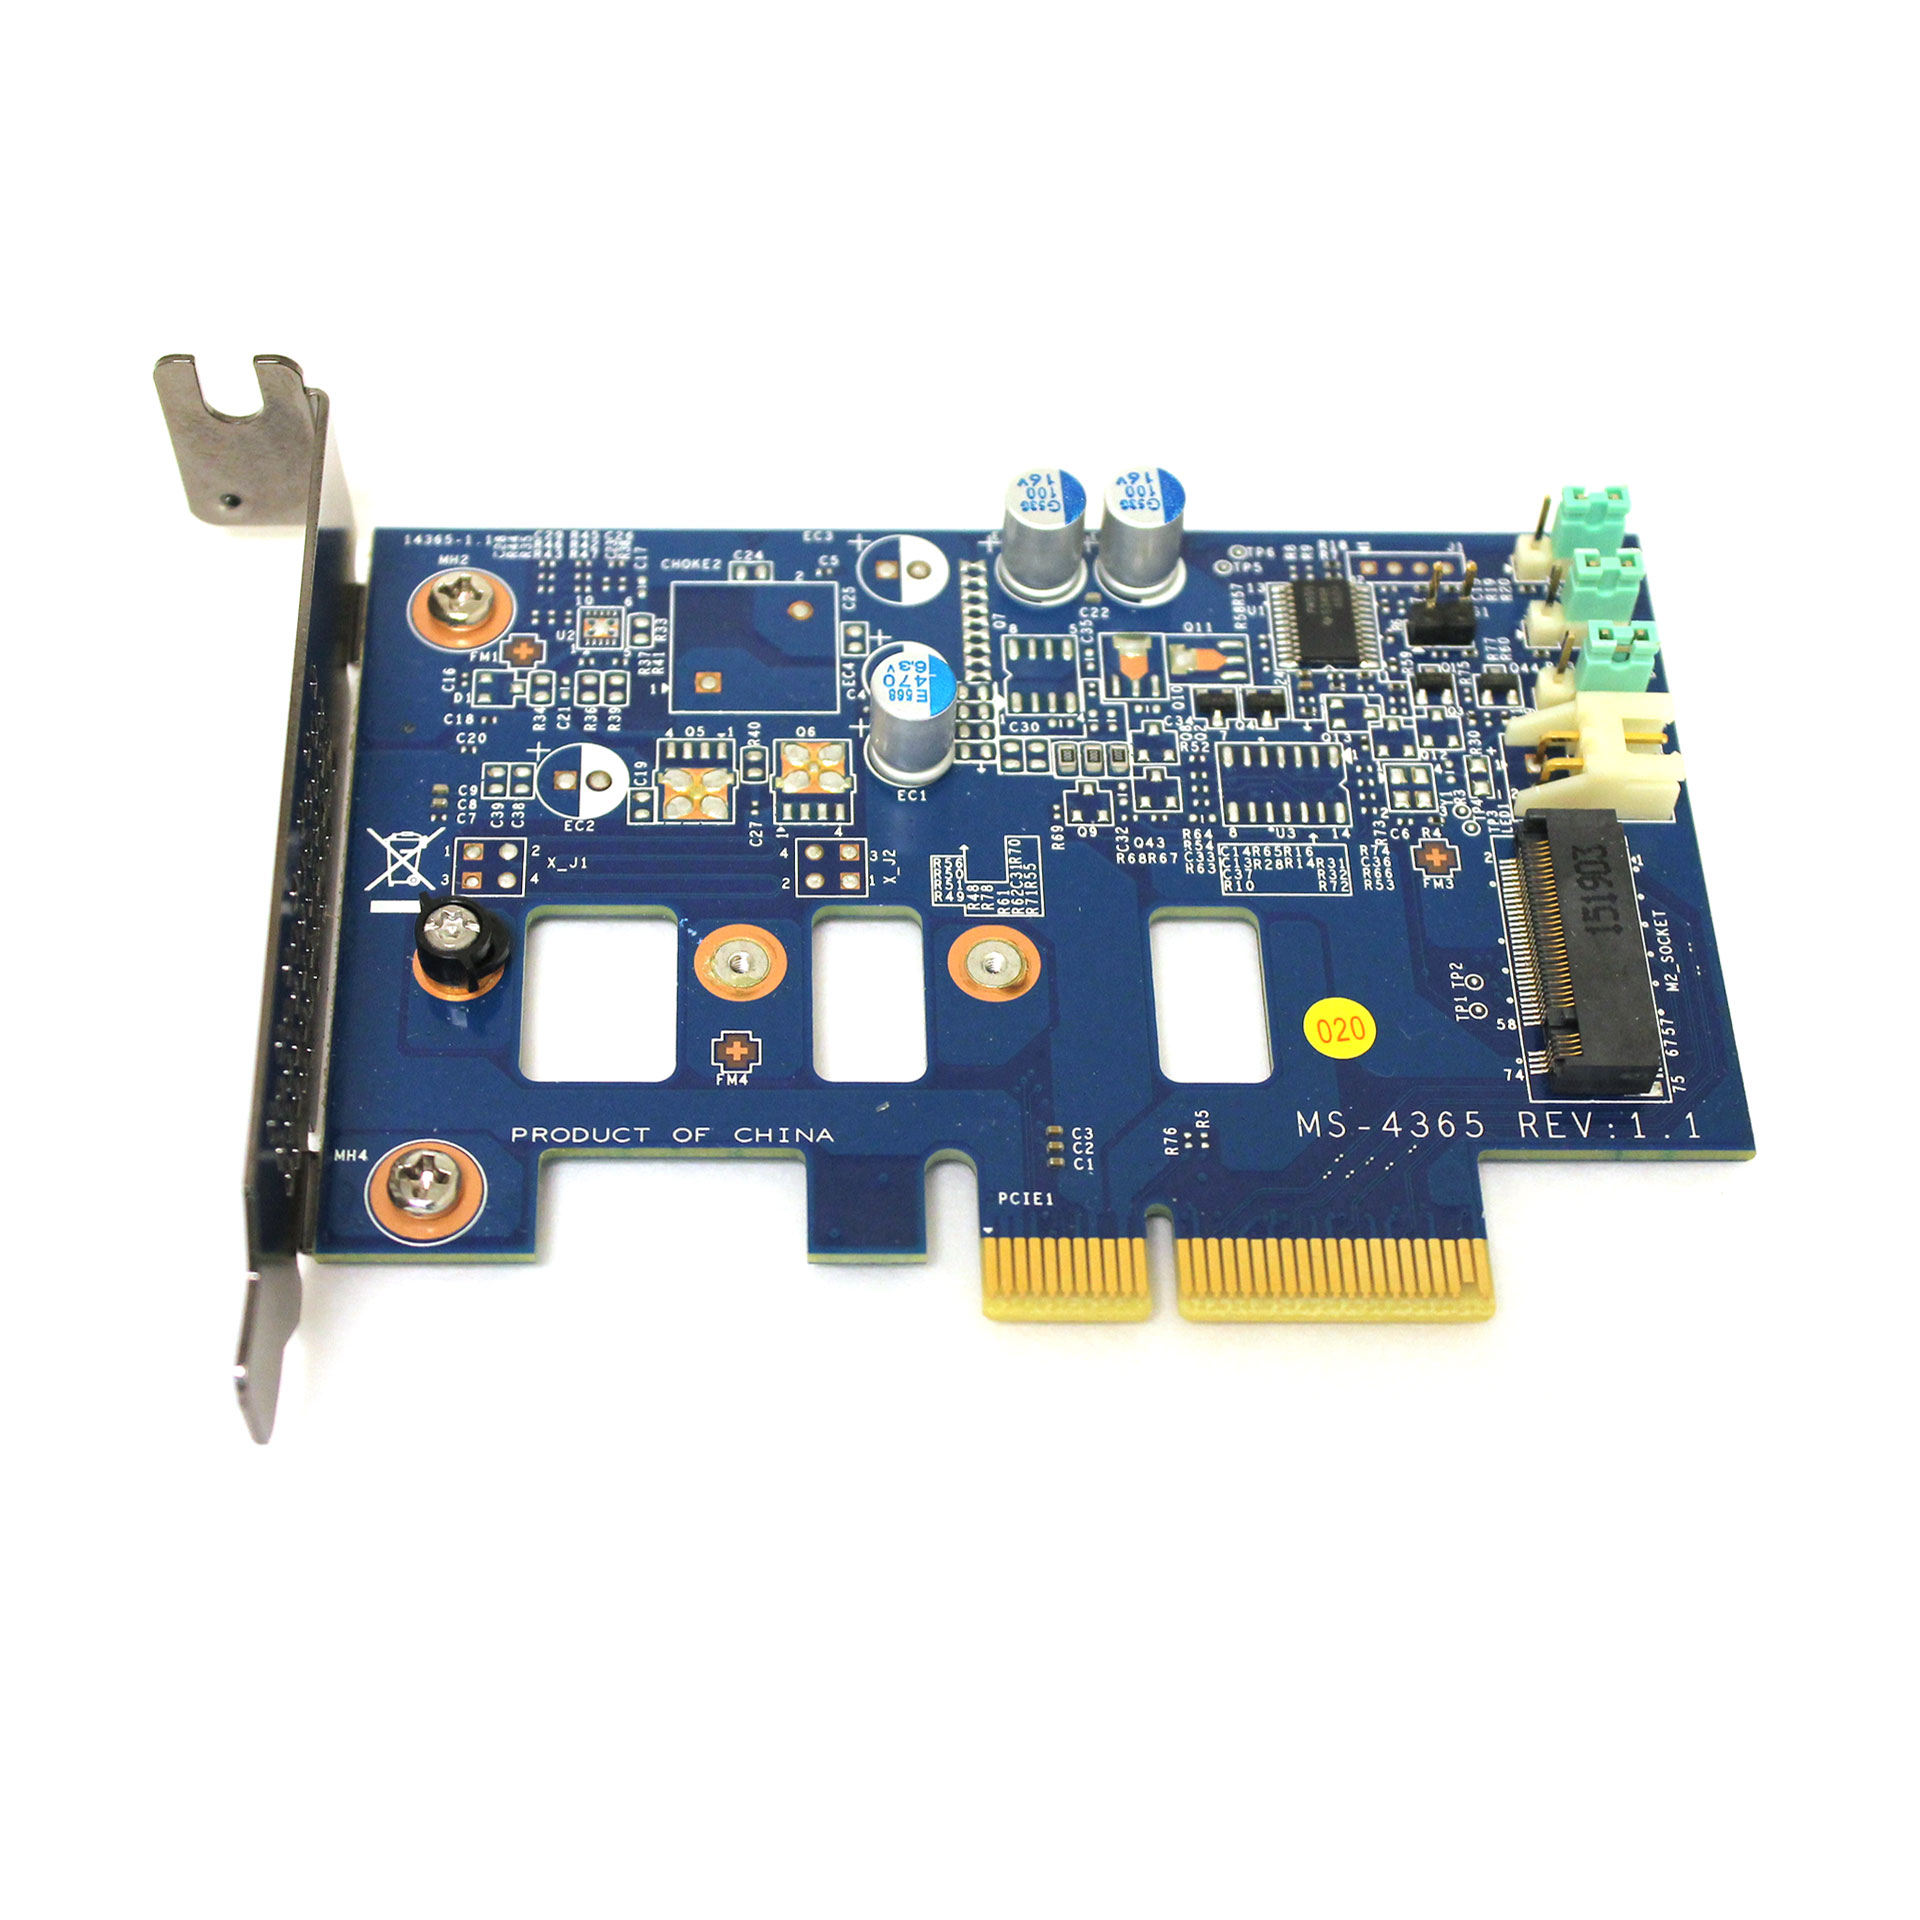 HP SSD PCI-e To M.2 Controller Adapter Card 742006-002 MS-4365 - Click Image to Close